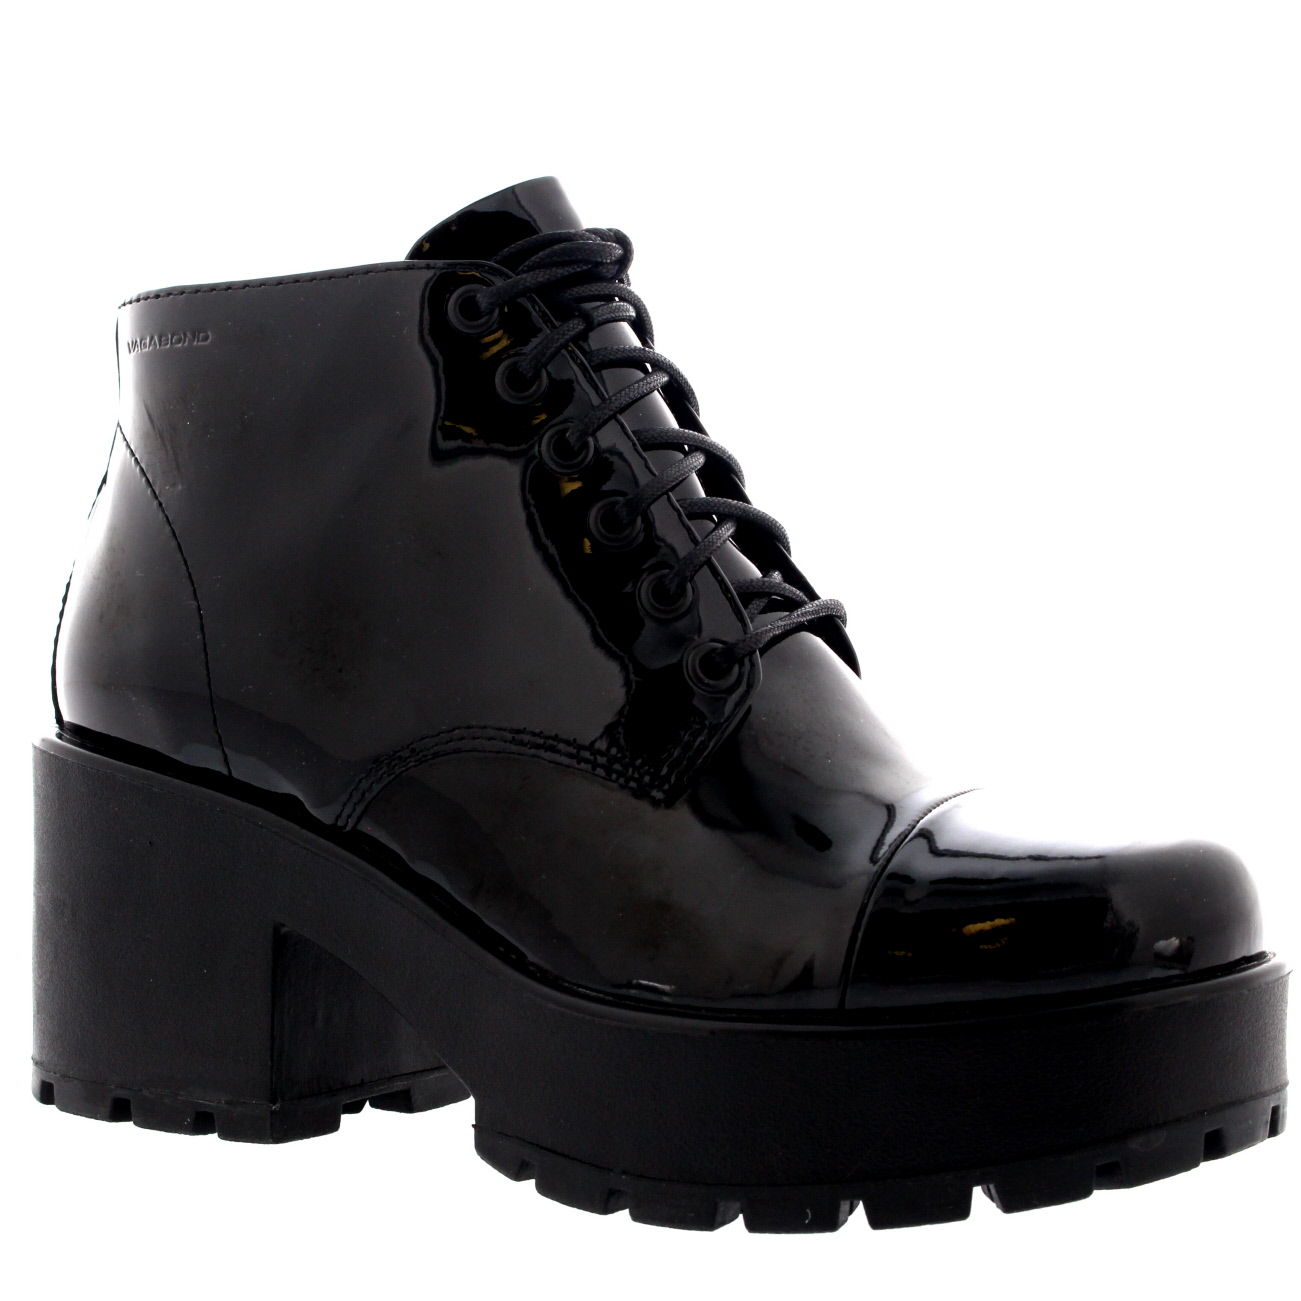 Vagabond Dioon Patent Ankle Boots